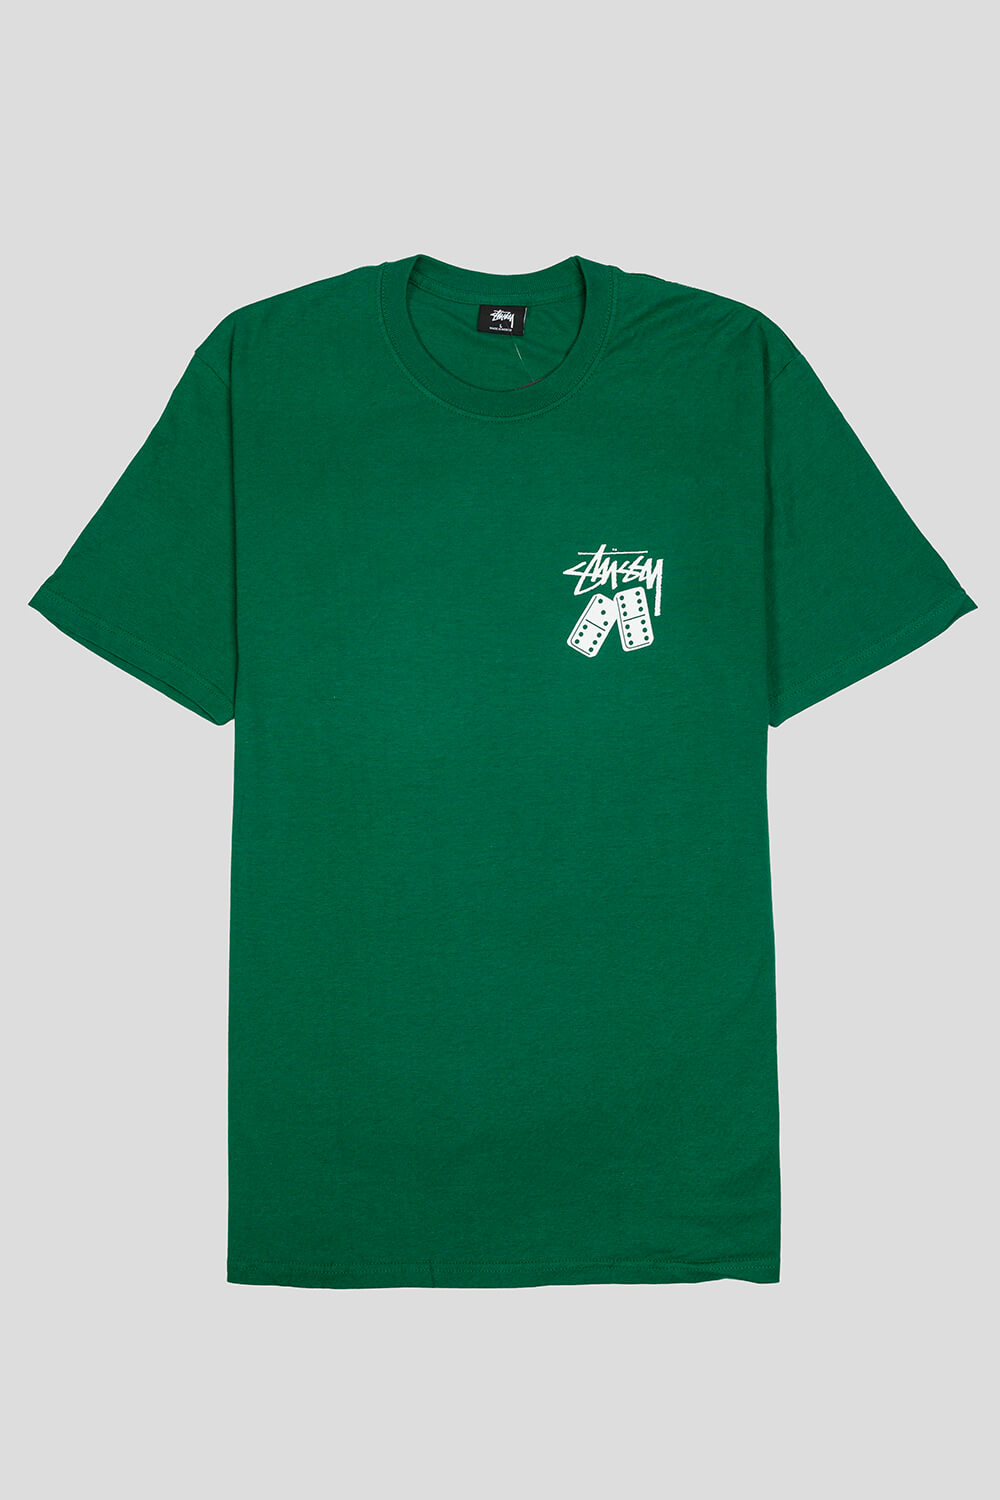 Dominoes Tee